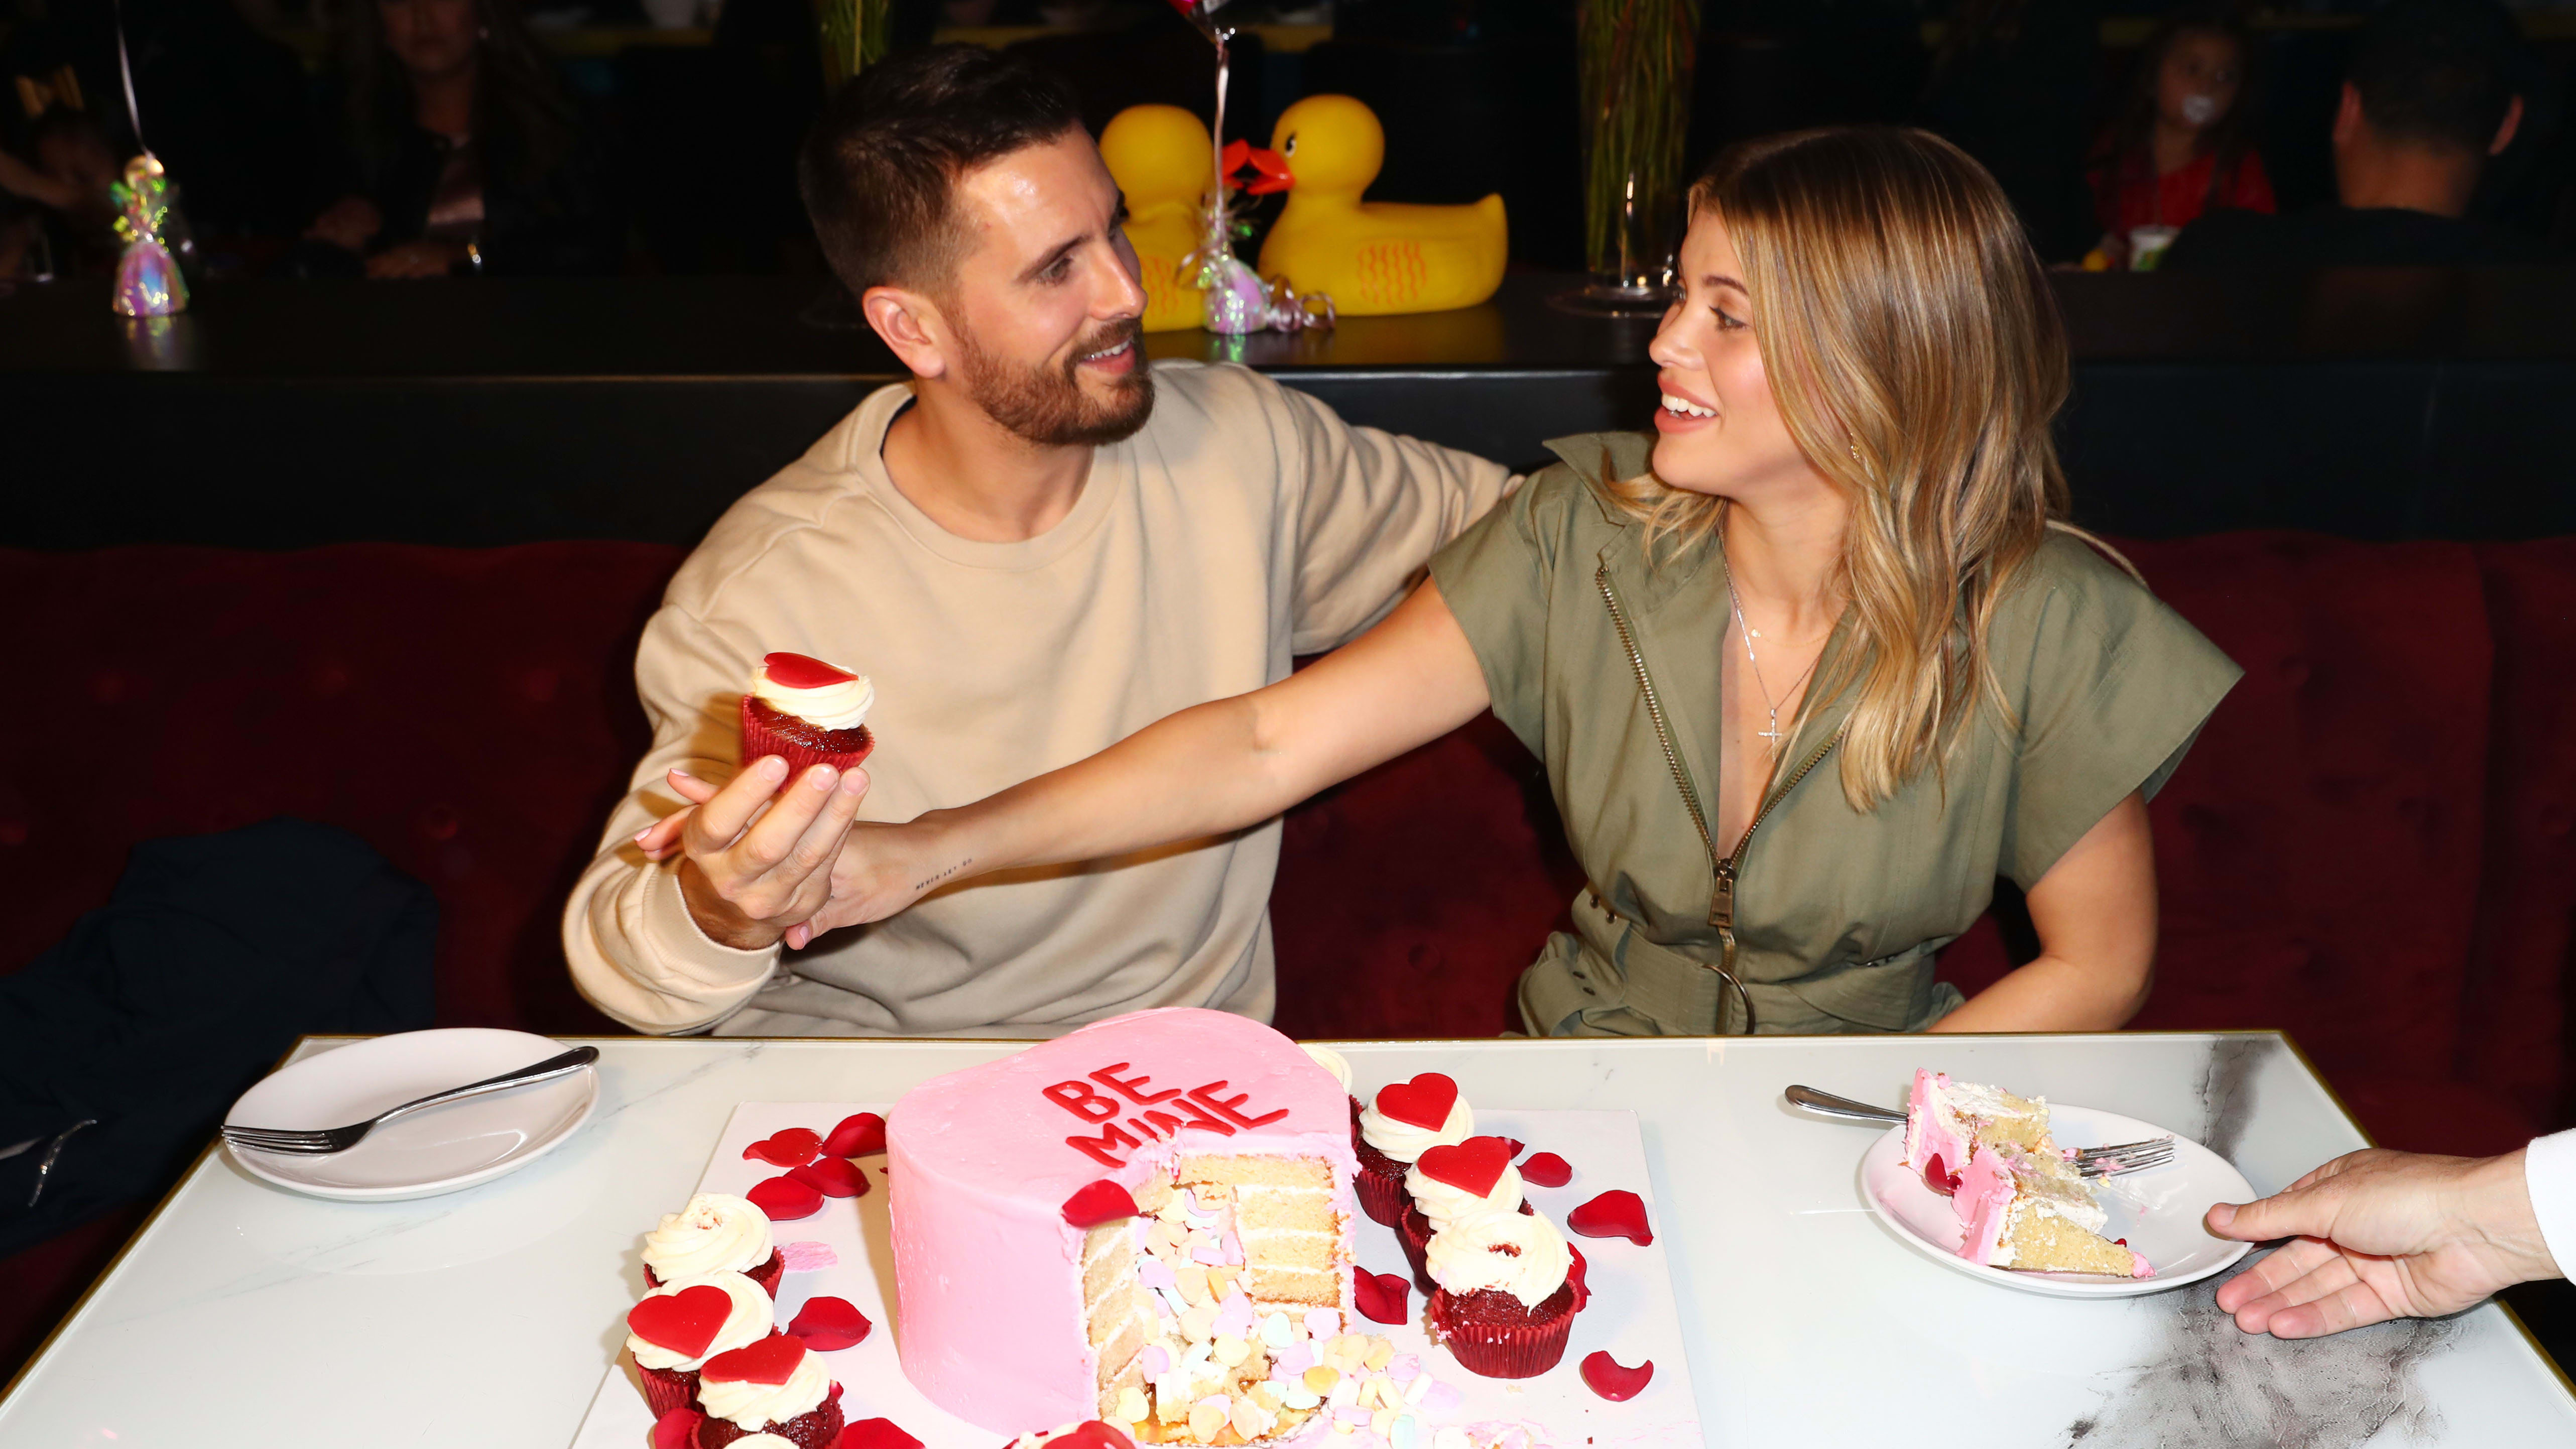 SAN DIEGO, CALIFORNIA - FEBRUARY 14:  Scott Disick and Sofia Richie celebrate Valentine's Day at San Diego's new Theatre Box® Entertainment Complex with dinner at Sugar Factory American Brasserie at Theatre Box® on February 14, 2019 in San Diego, California. (Photo by Joe Scarnici/Getty Images for Theatre Box)